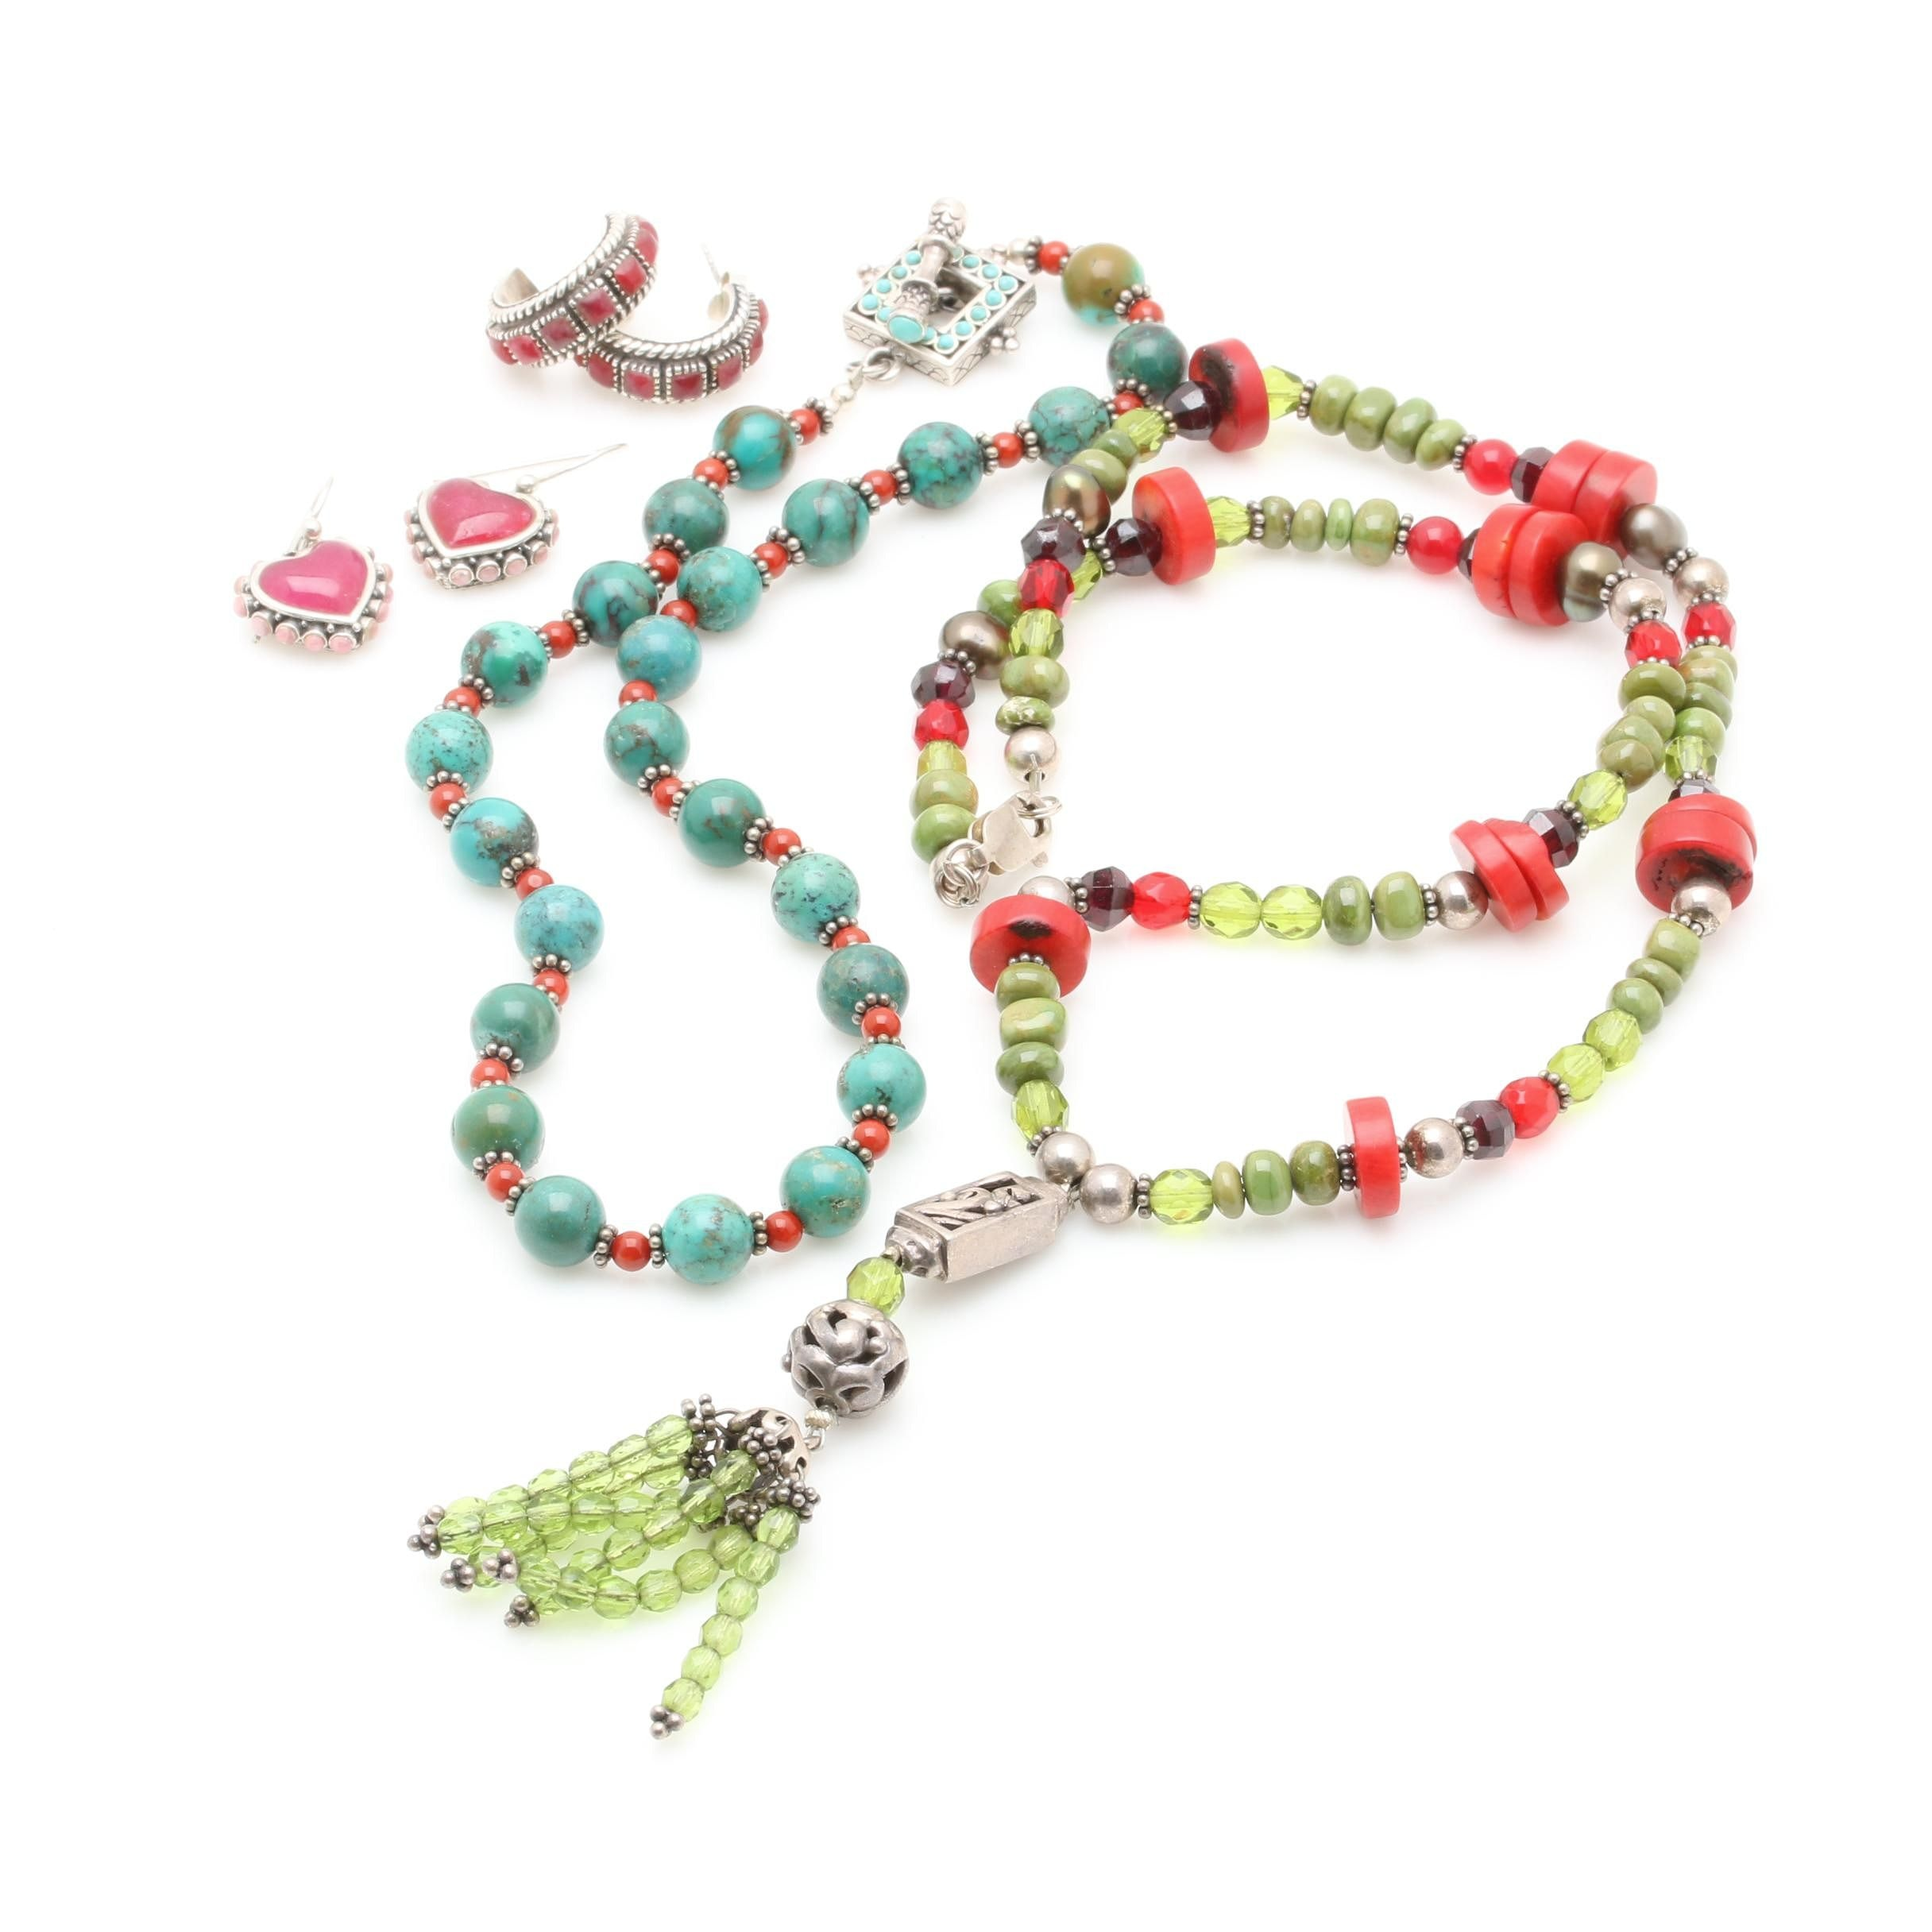 Sterling Silver Necklaces and Earrings Including Coral, Turquoise, and Barse